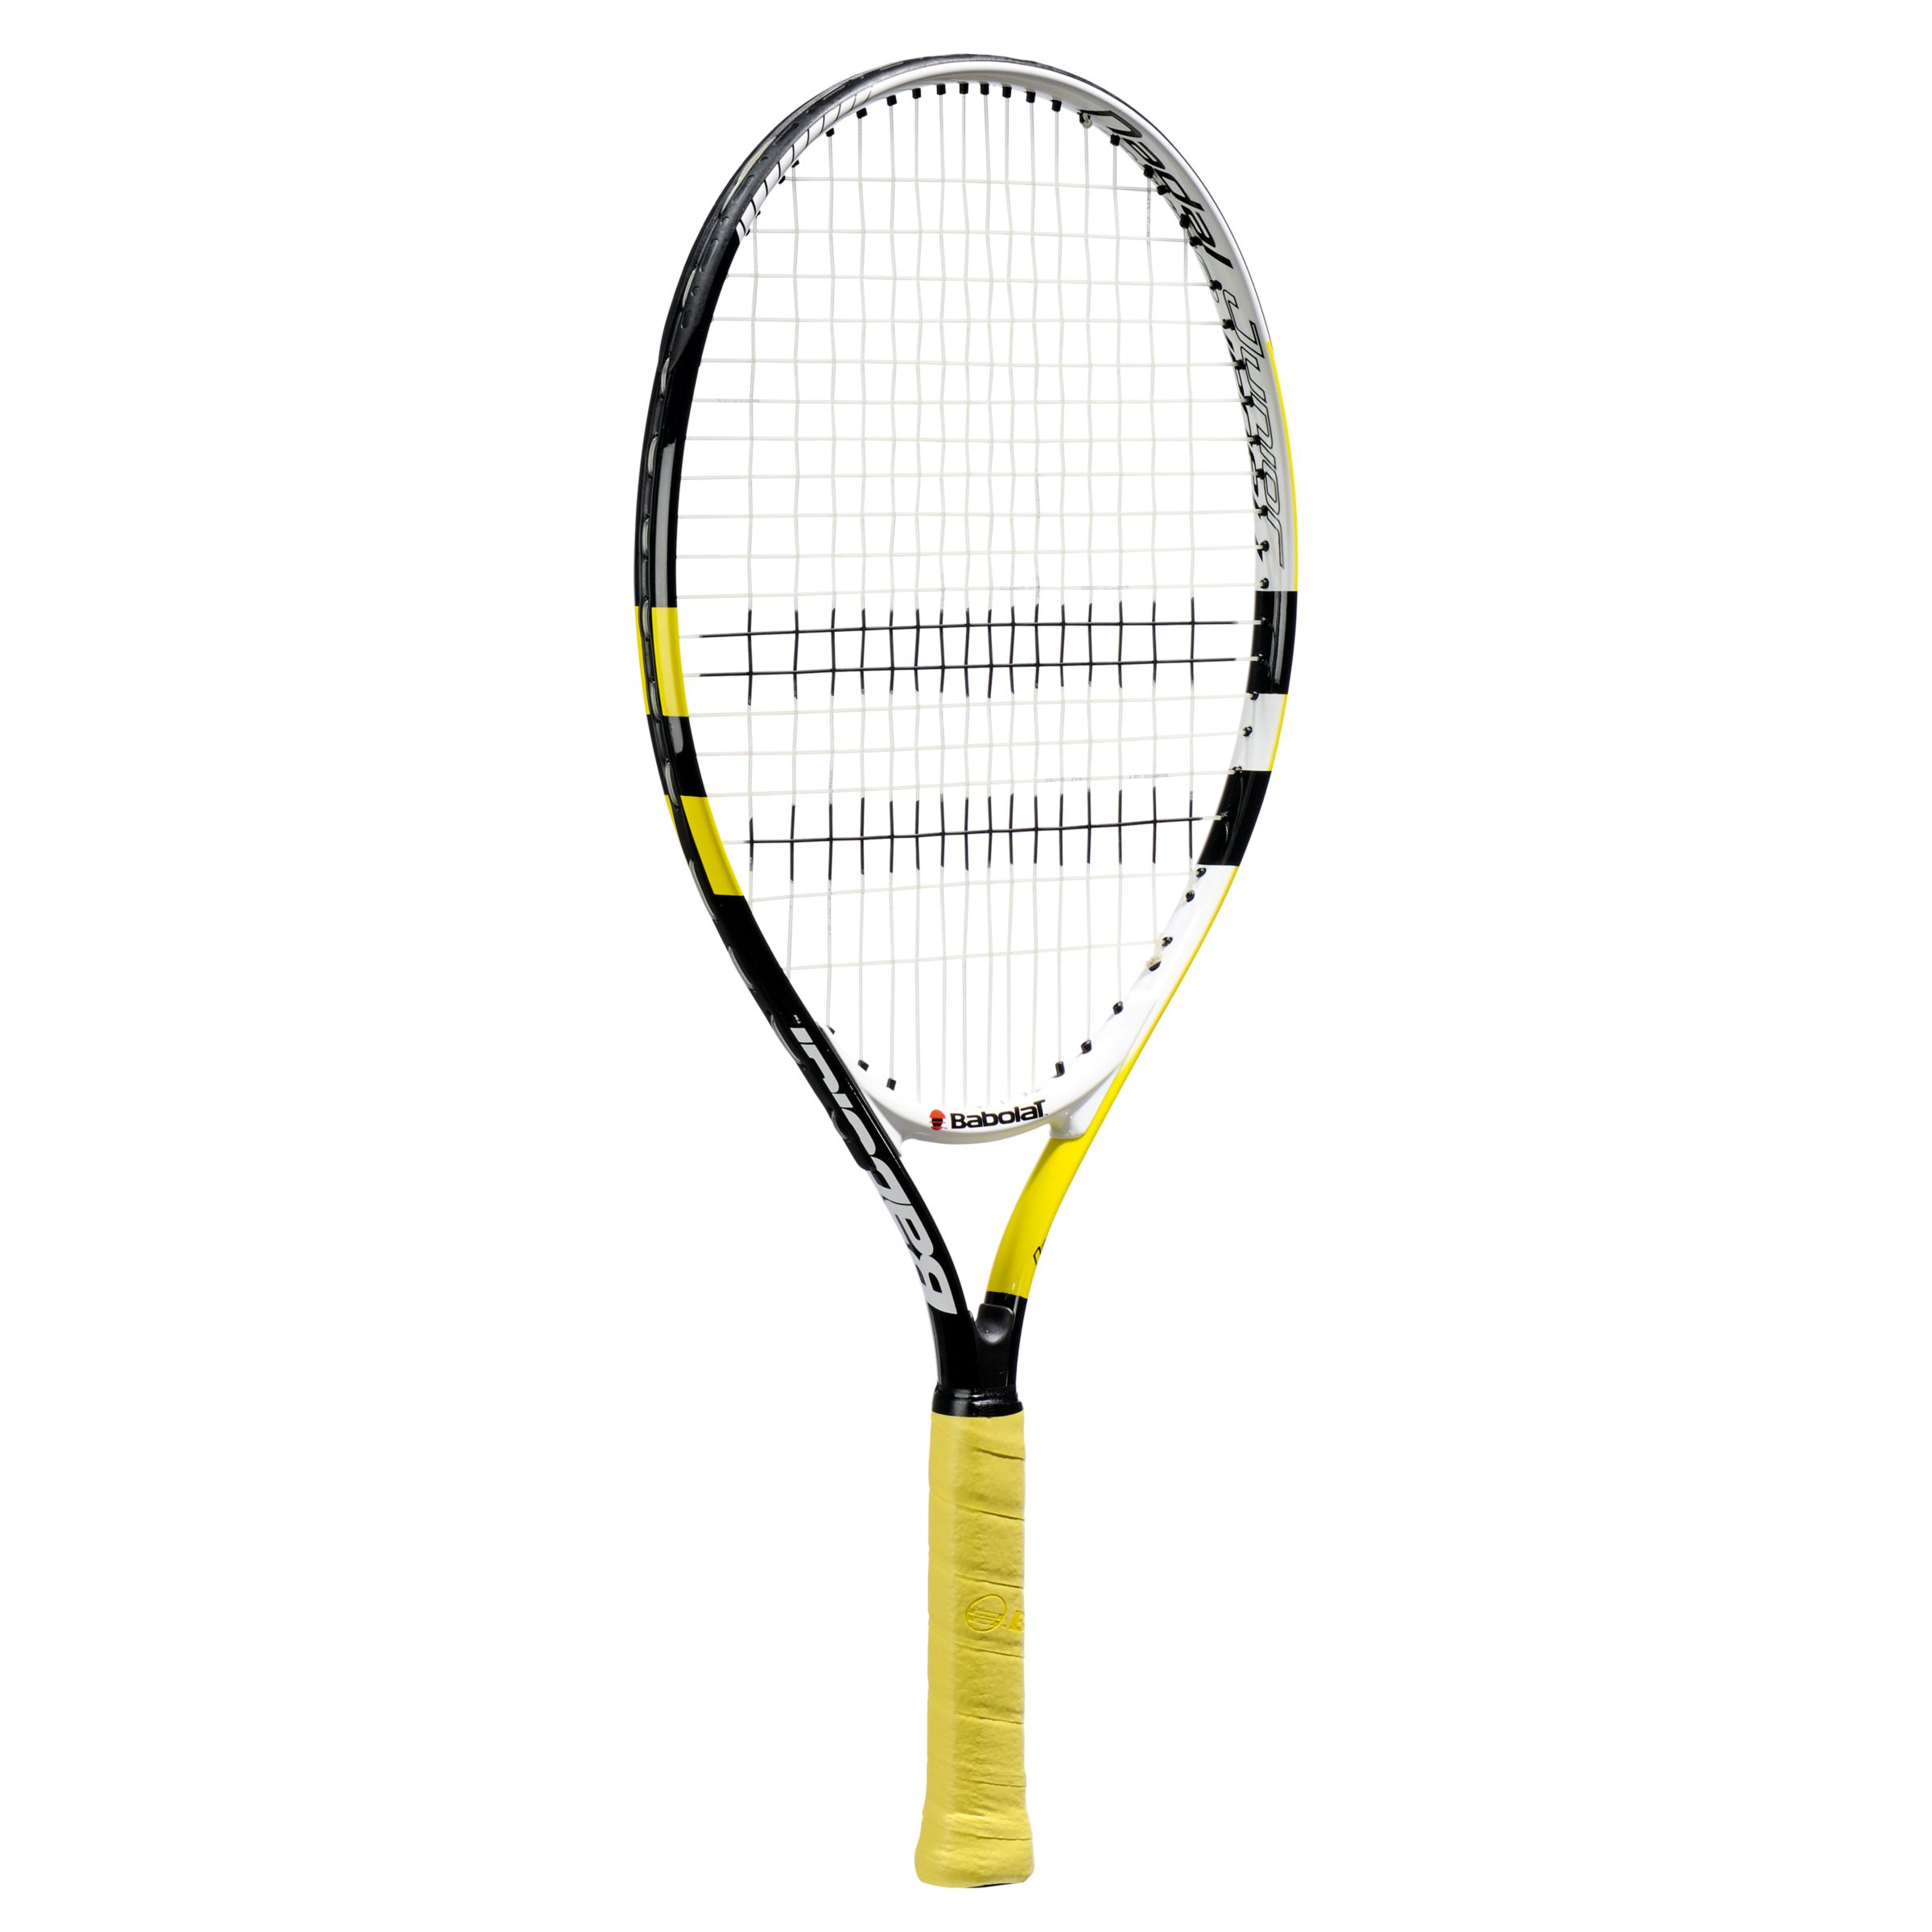 Babolat Nadal Junior Tennis Racket - review, compare ...